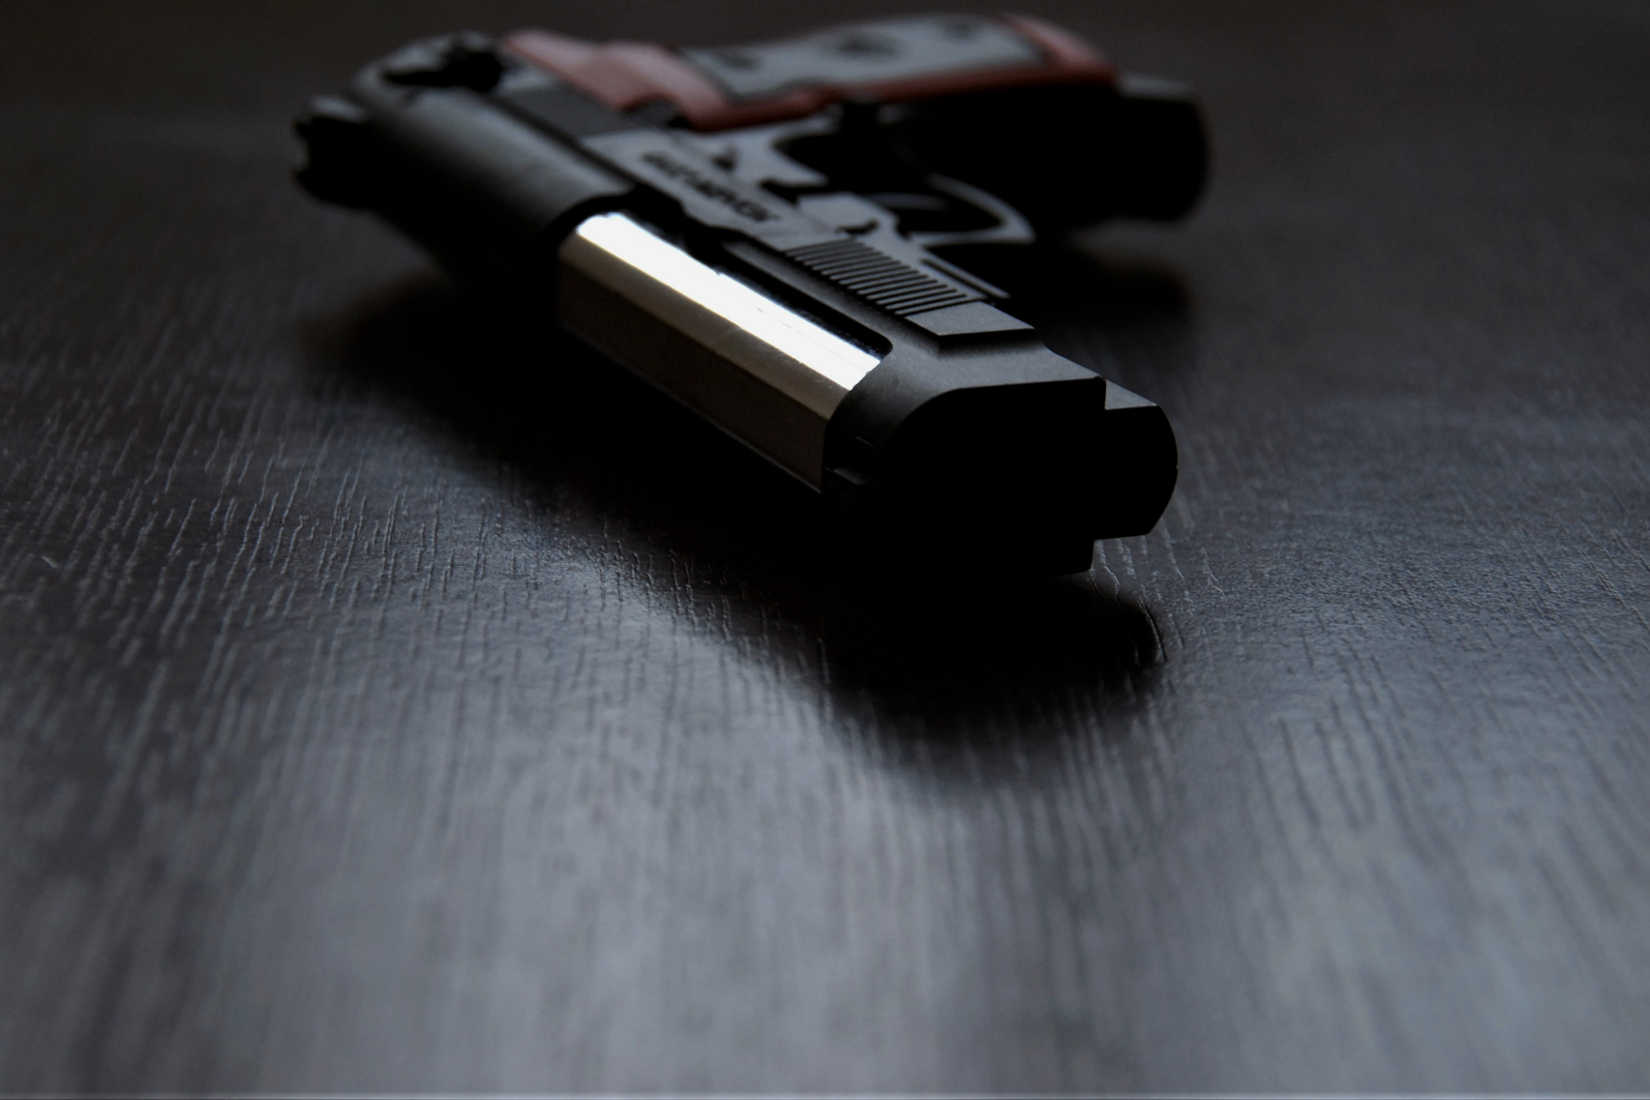 Good Guy with Gun Stops Intruder from Stabbing Father during Home Invasion